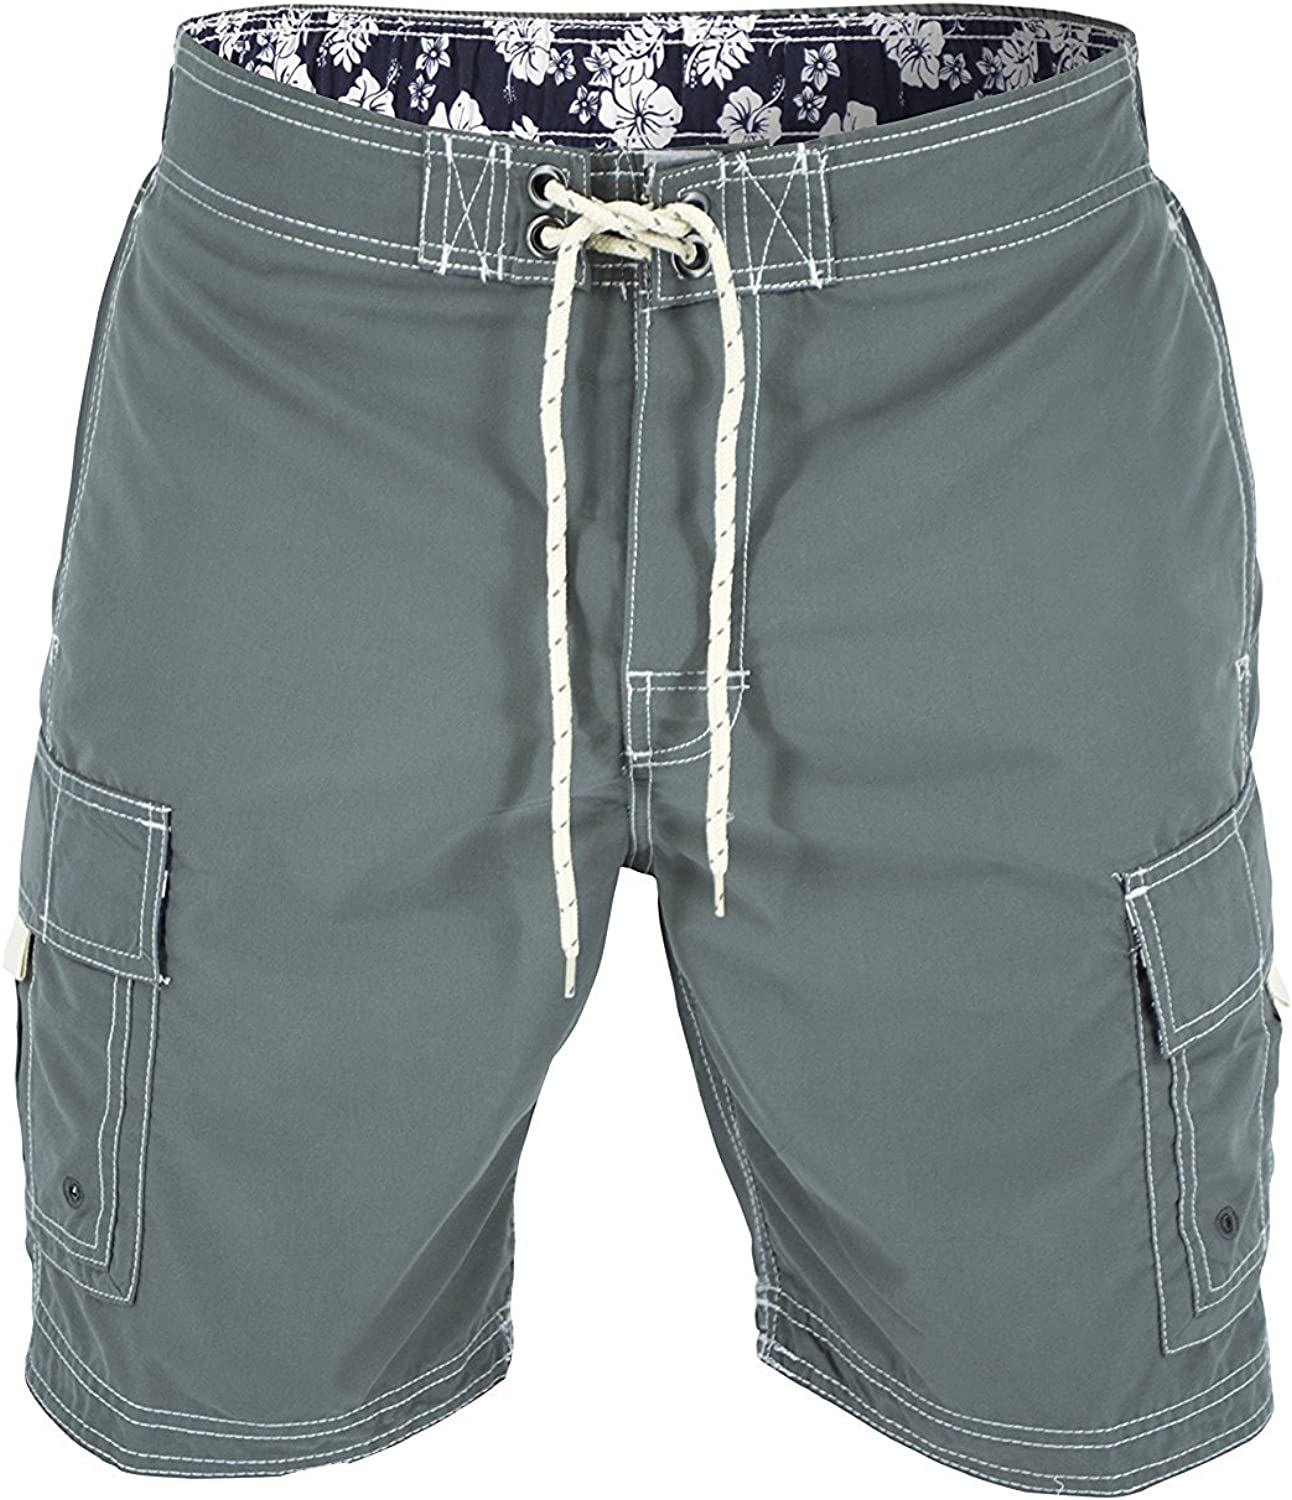 US Apparel Men's Solid Color Cargo Style Microfiber Board Shorts Available in 3XL, 4XL and 5XL